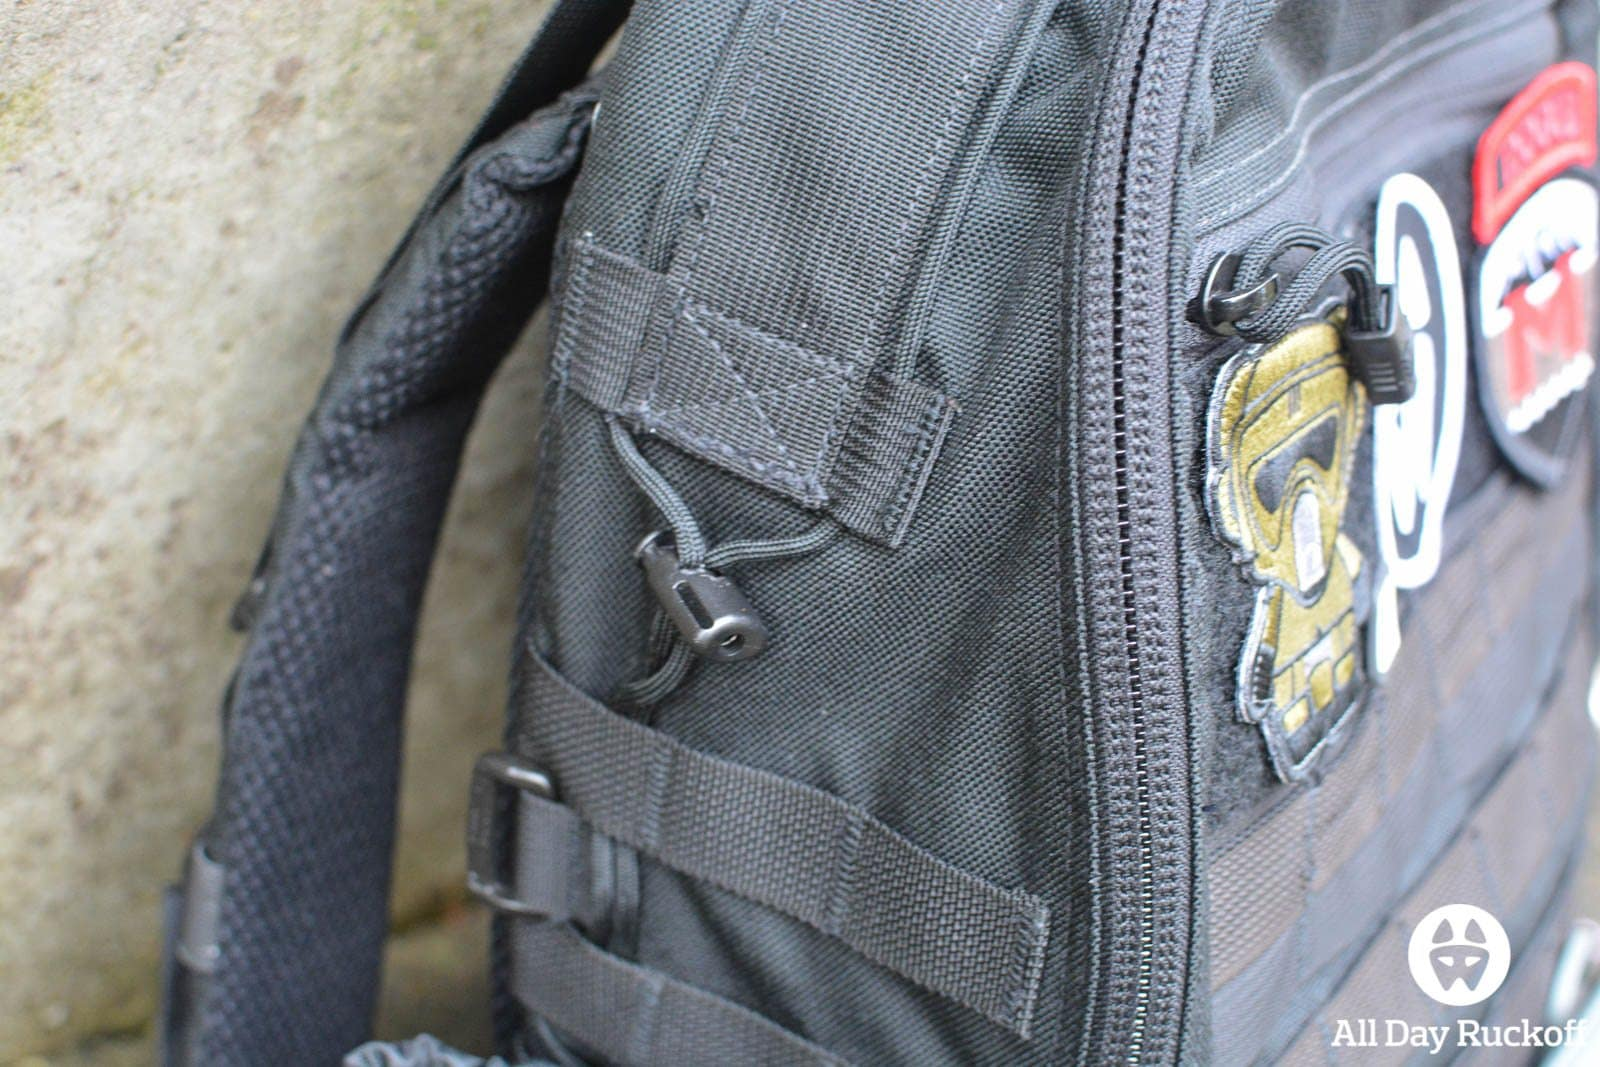 Triple Aught Design Litespeed Review - Elastic Weave